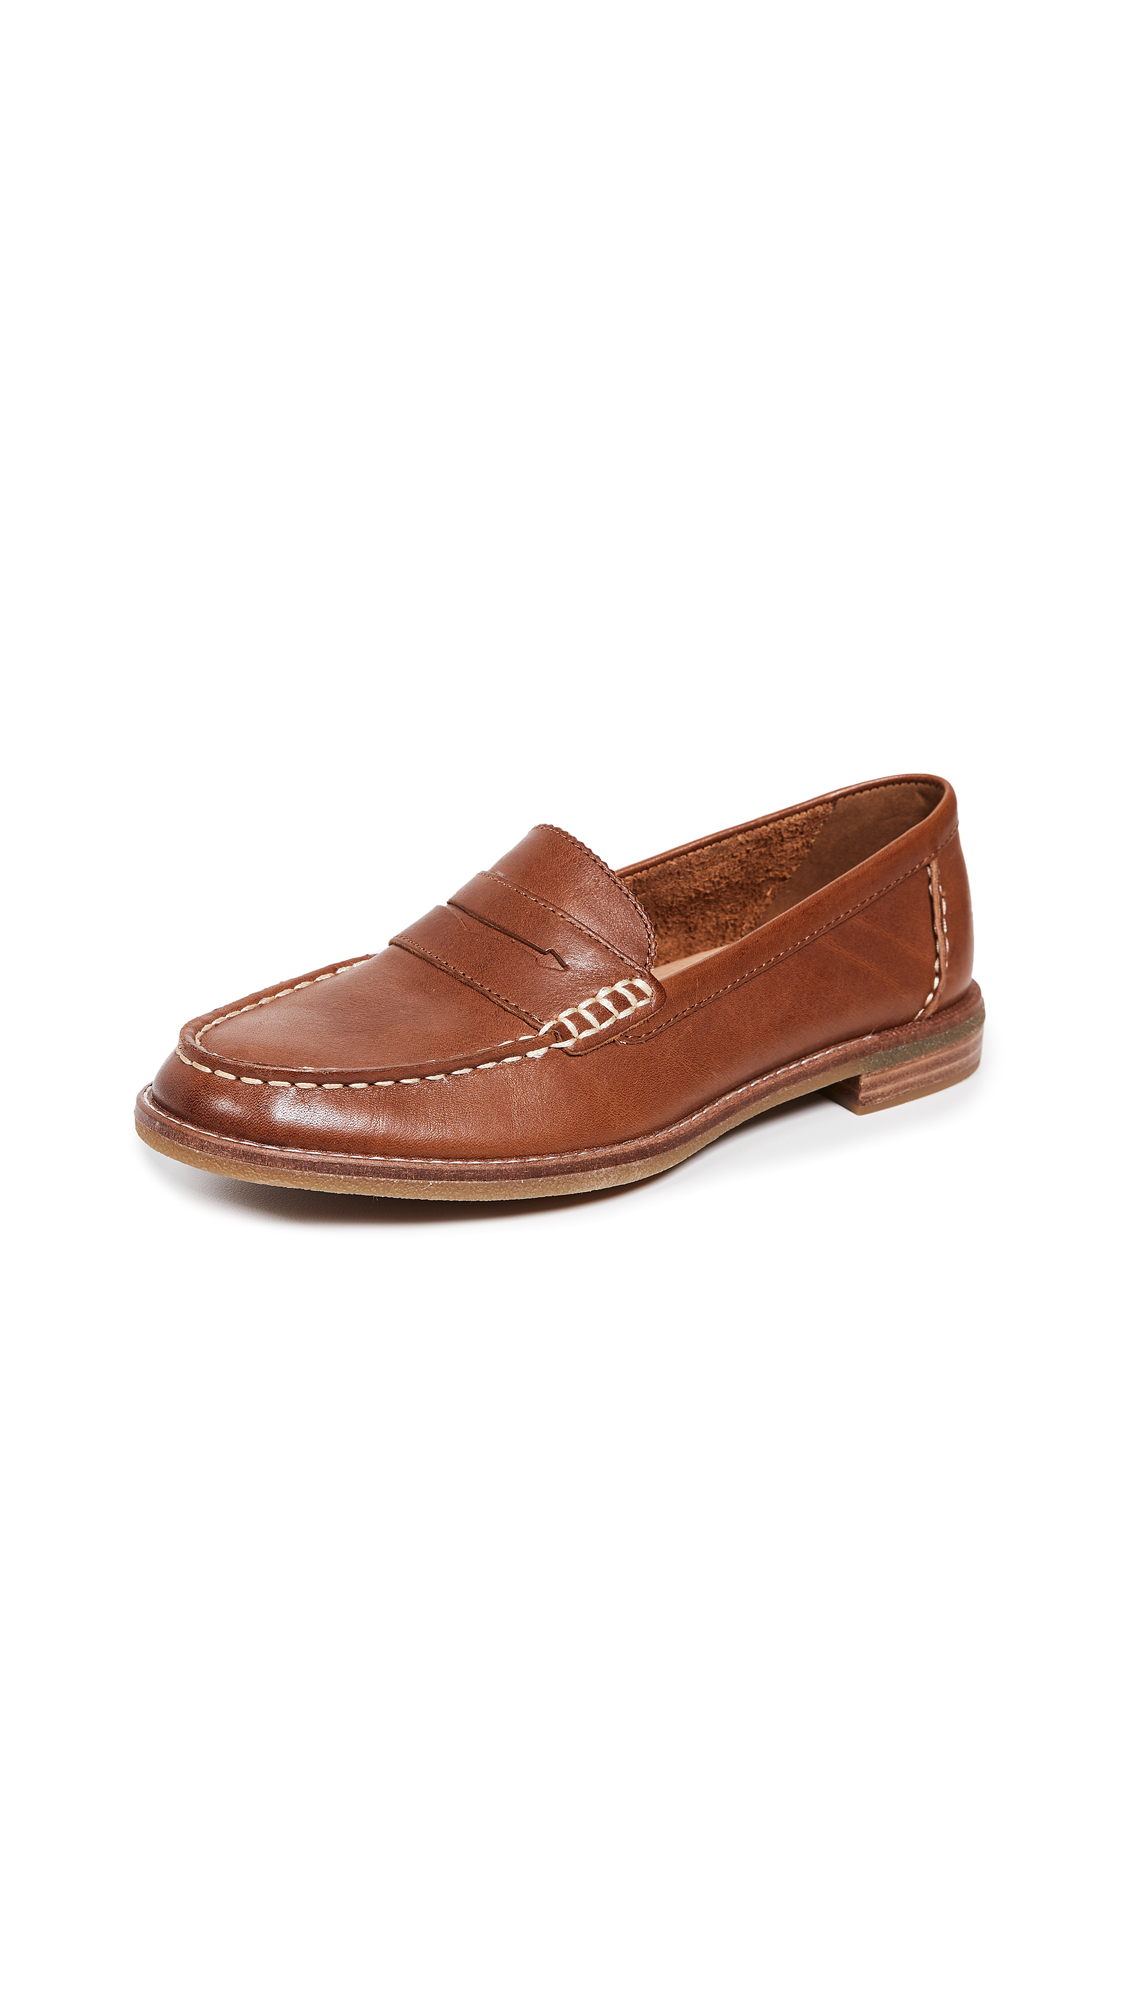 Sperry Seaport Penny Loafers - Tan